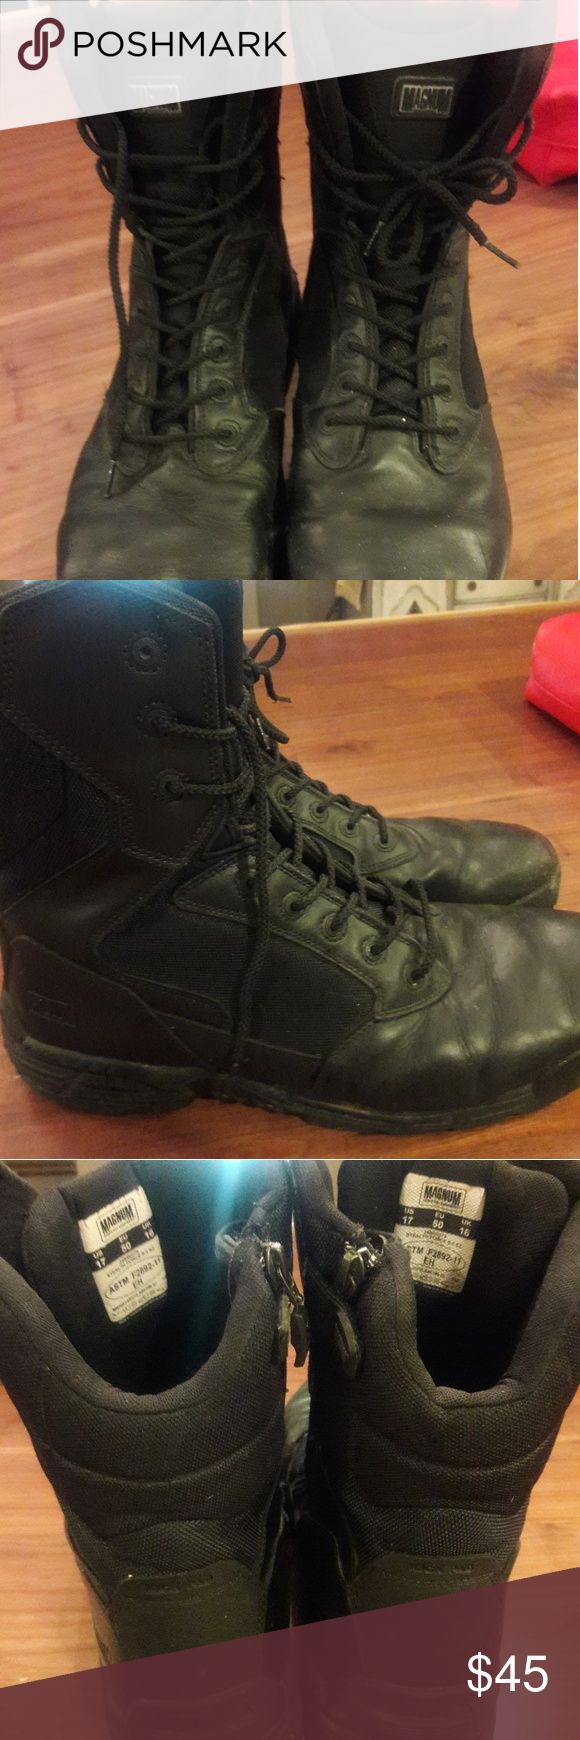 Men's sz 18 MAGNUM combat police force boots Excellent shape, 1st responder style, combat wear, great for being on your feet all day.  NOT steel toed! Magnum Shoes Boots